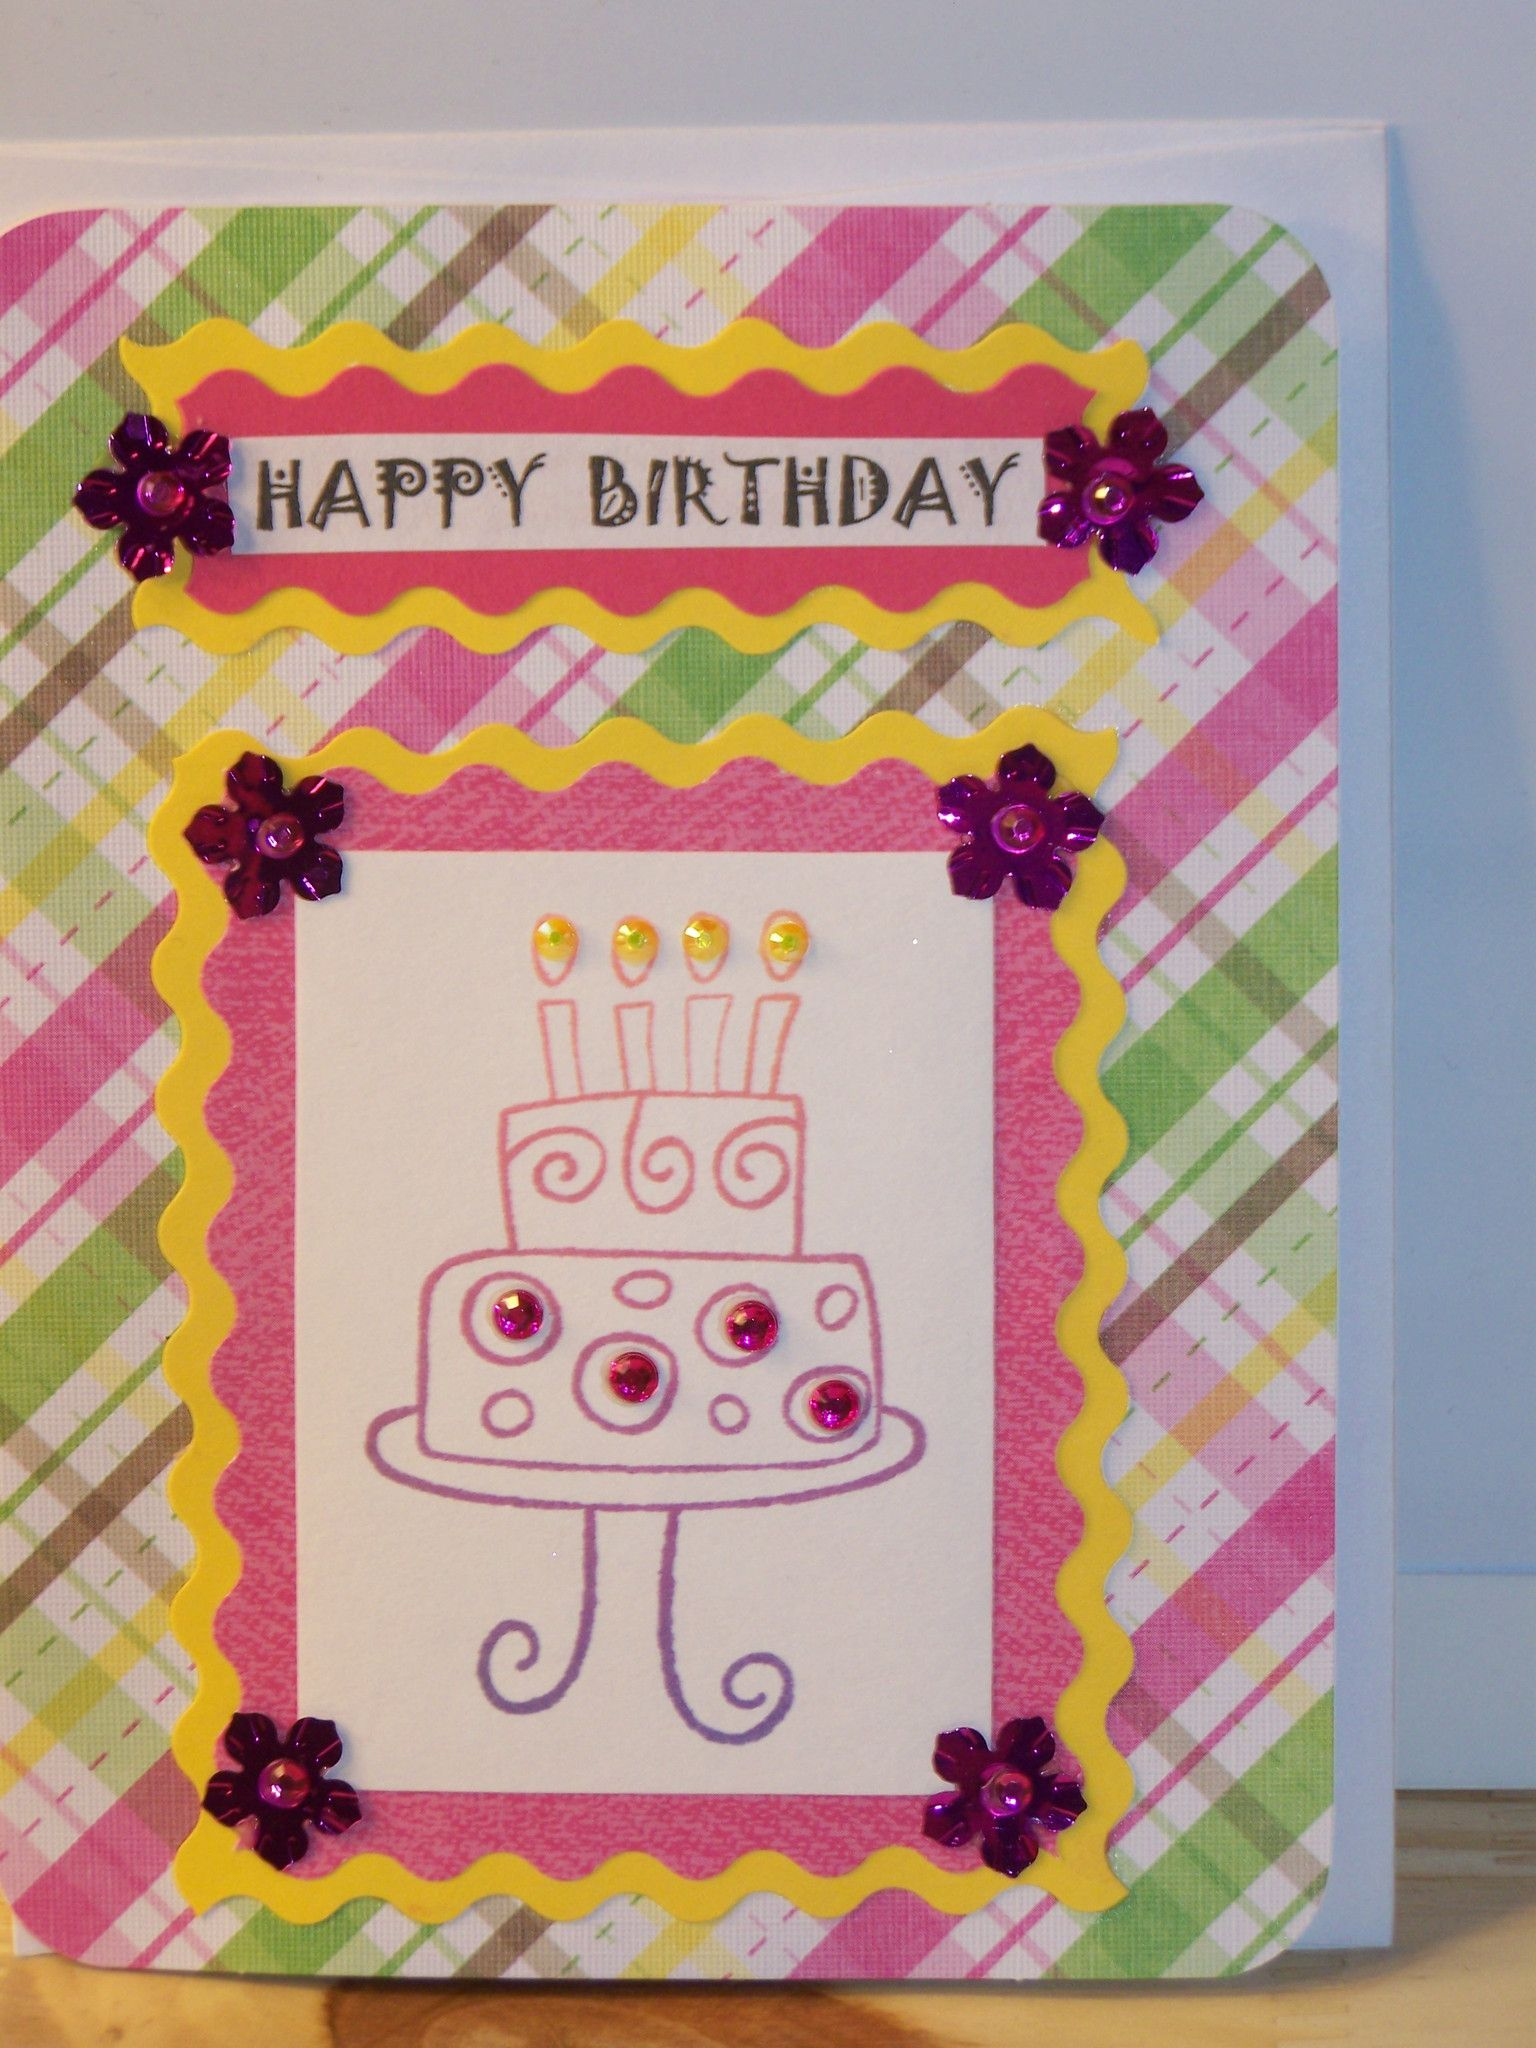 Birthday Card Plaid W Cake Handmade Birthday Cards Birthday